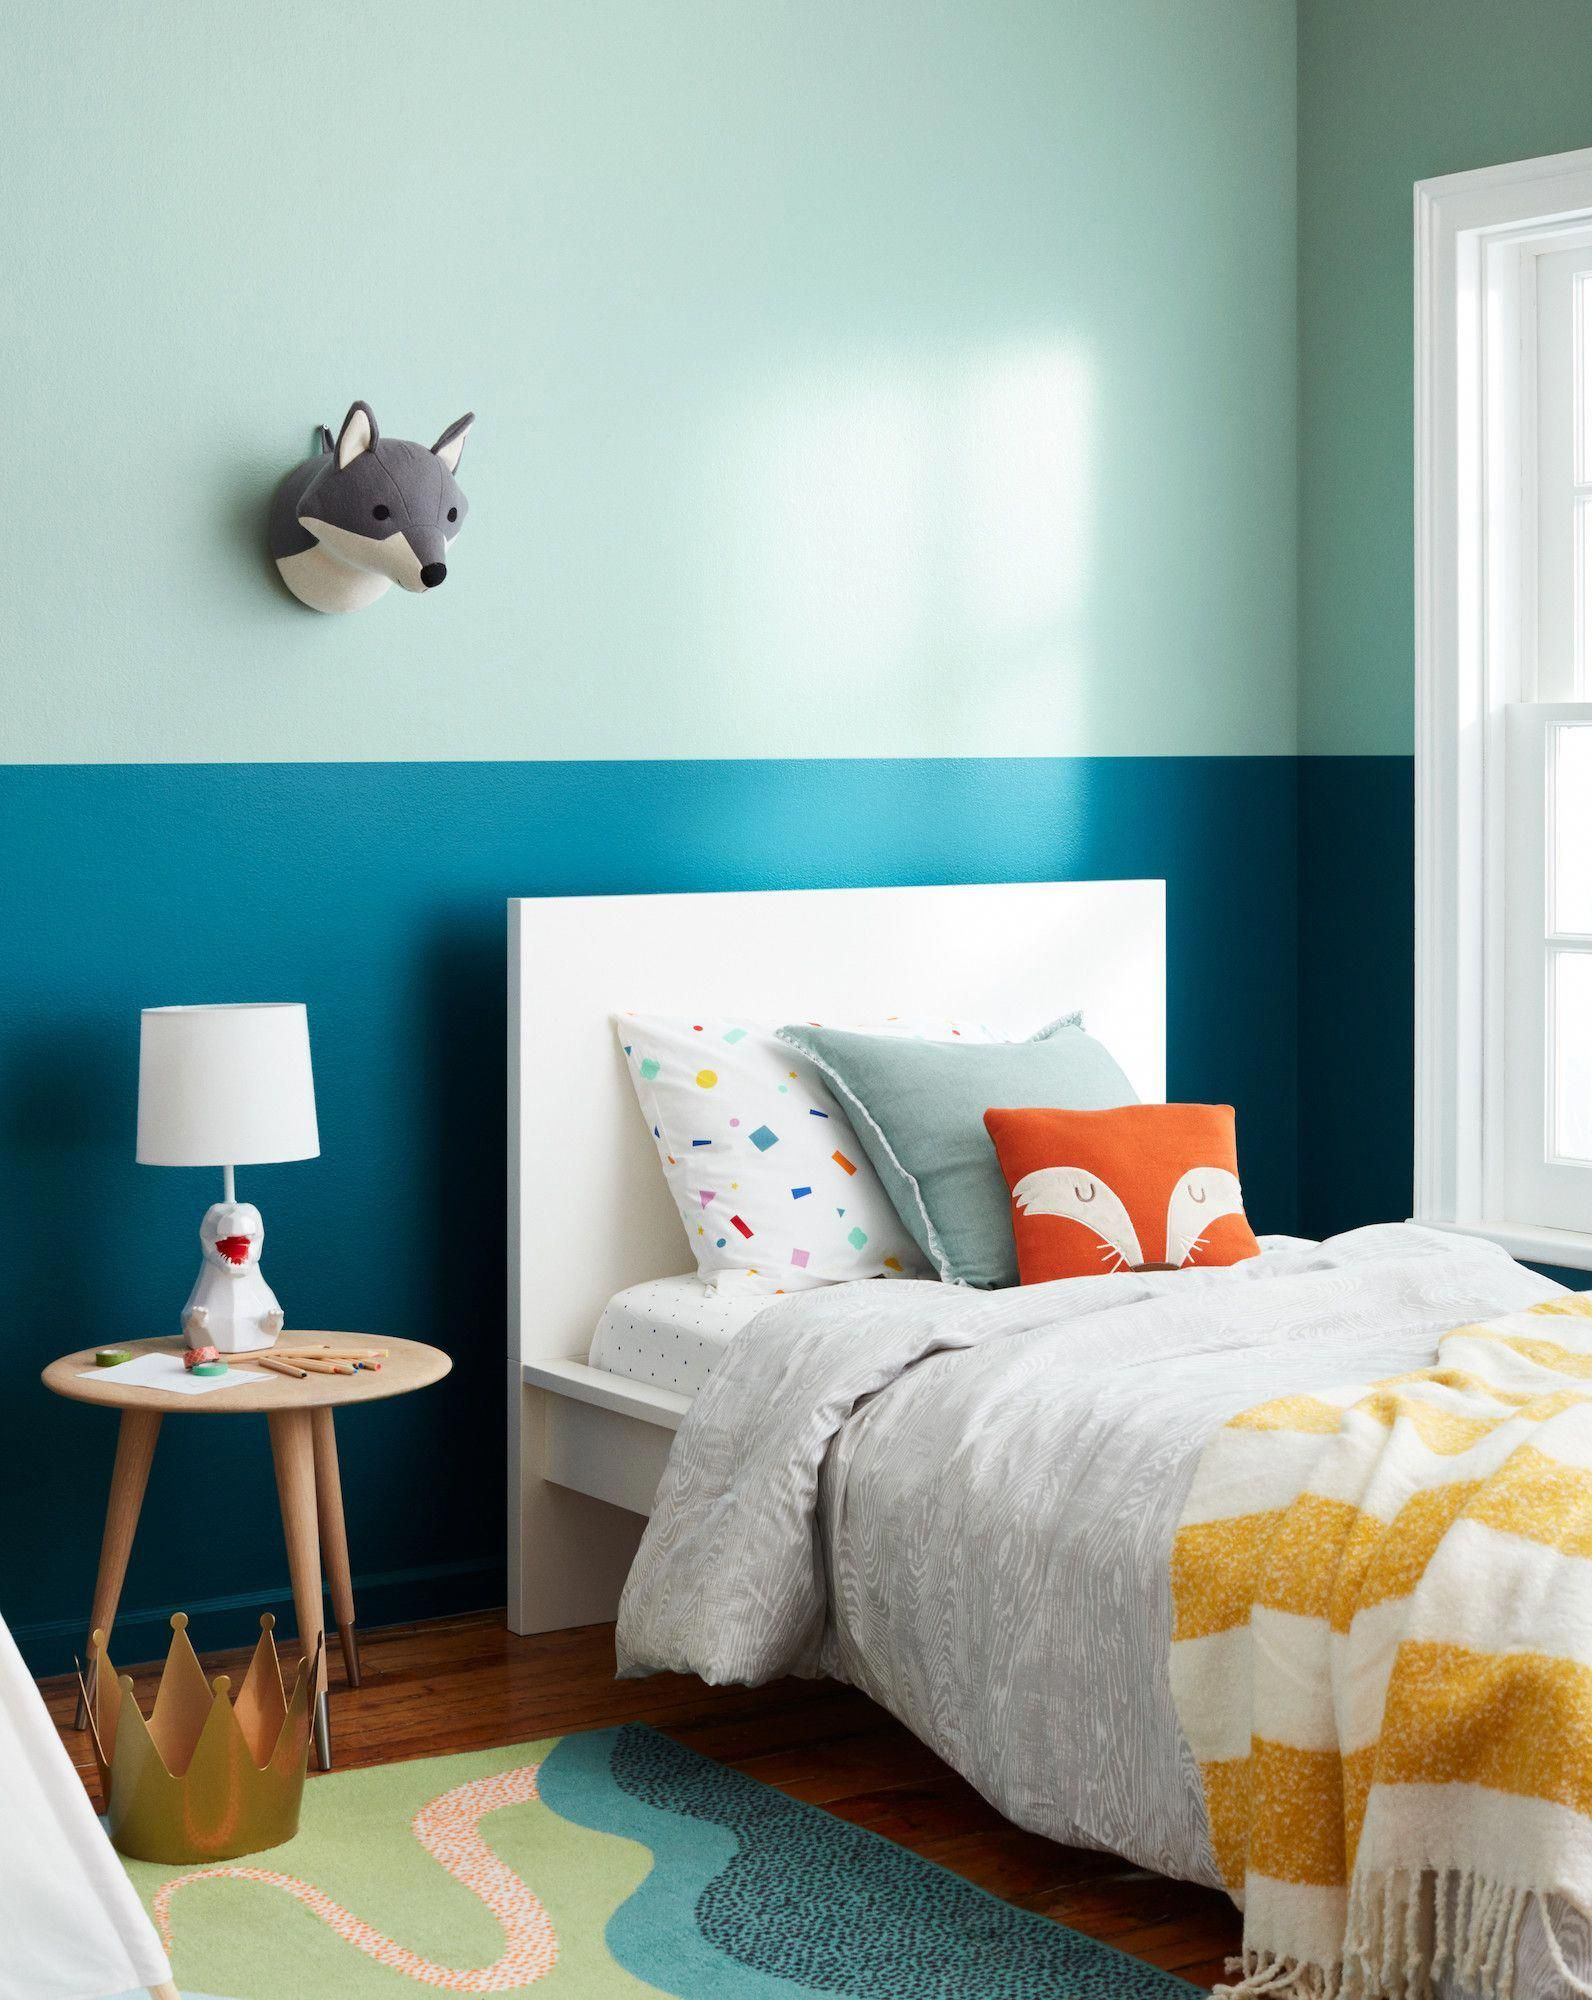 Paint Idea For A Kids Room Paint The Wall Two Colors Colorblock Painting Kidsroomdecor Best Bedroom Paint Colors Kids Bedroom Paint Room Paint